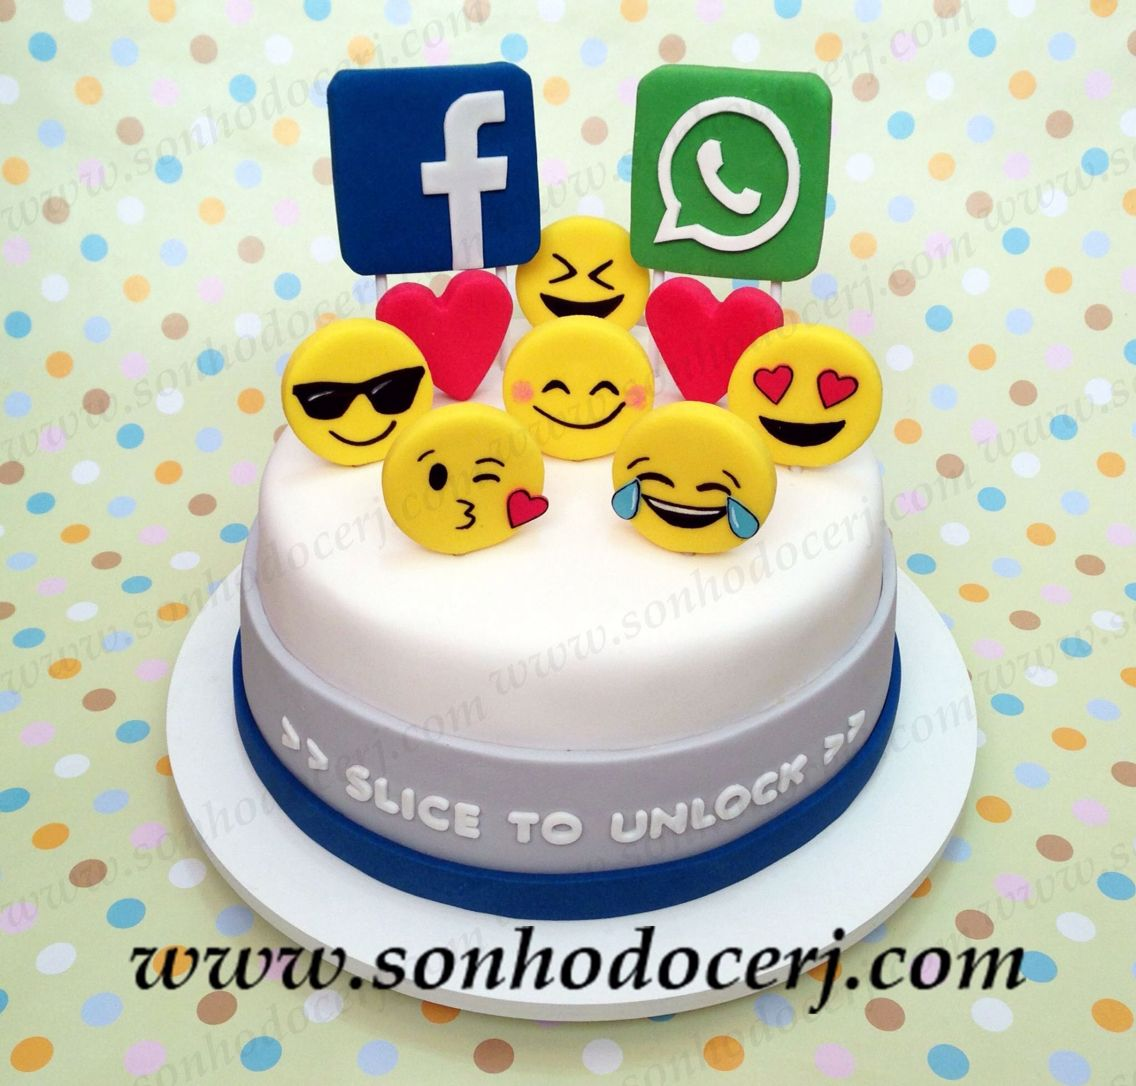 Bolo Facebook e WhatsApp! Slice   yes sliCe   to unlock and